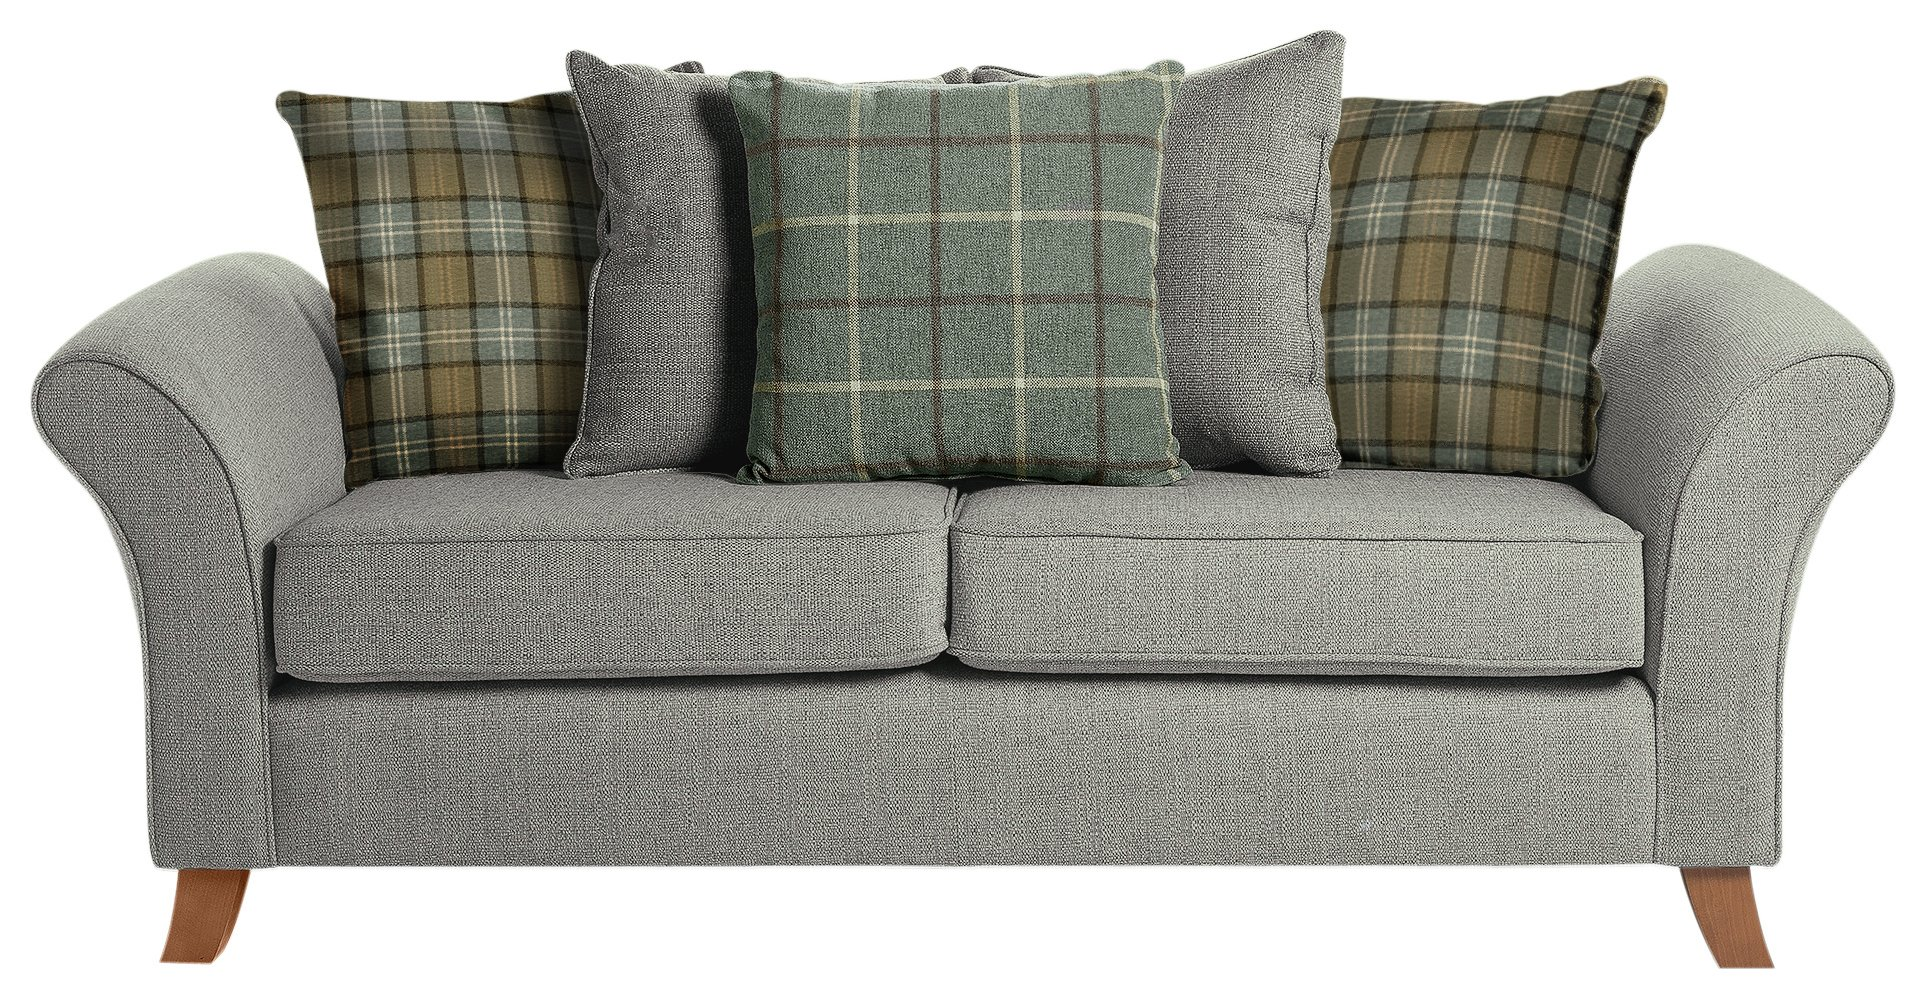 fabric chesterfield sofa argos buy loveseat bed sale on collection kayla 3 seater grey